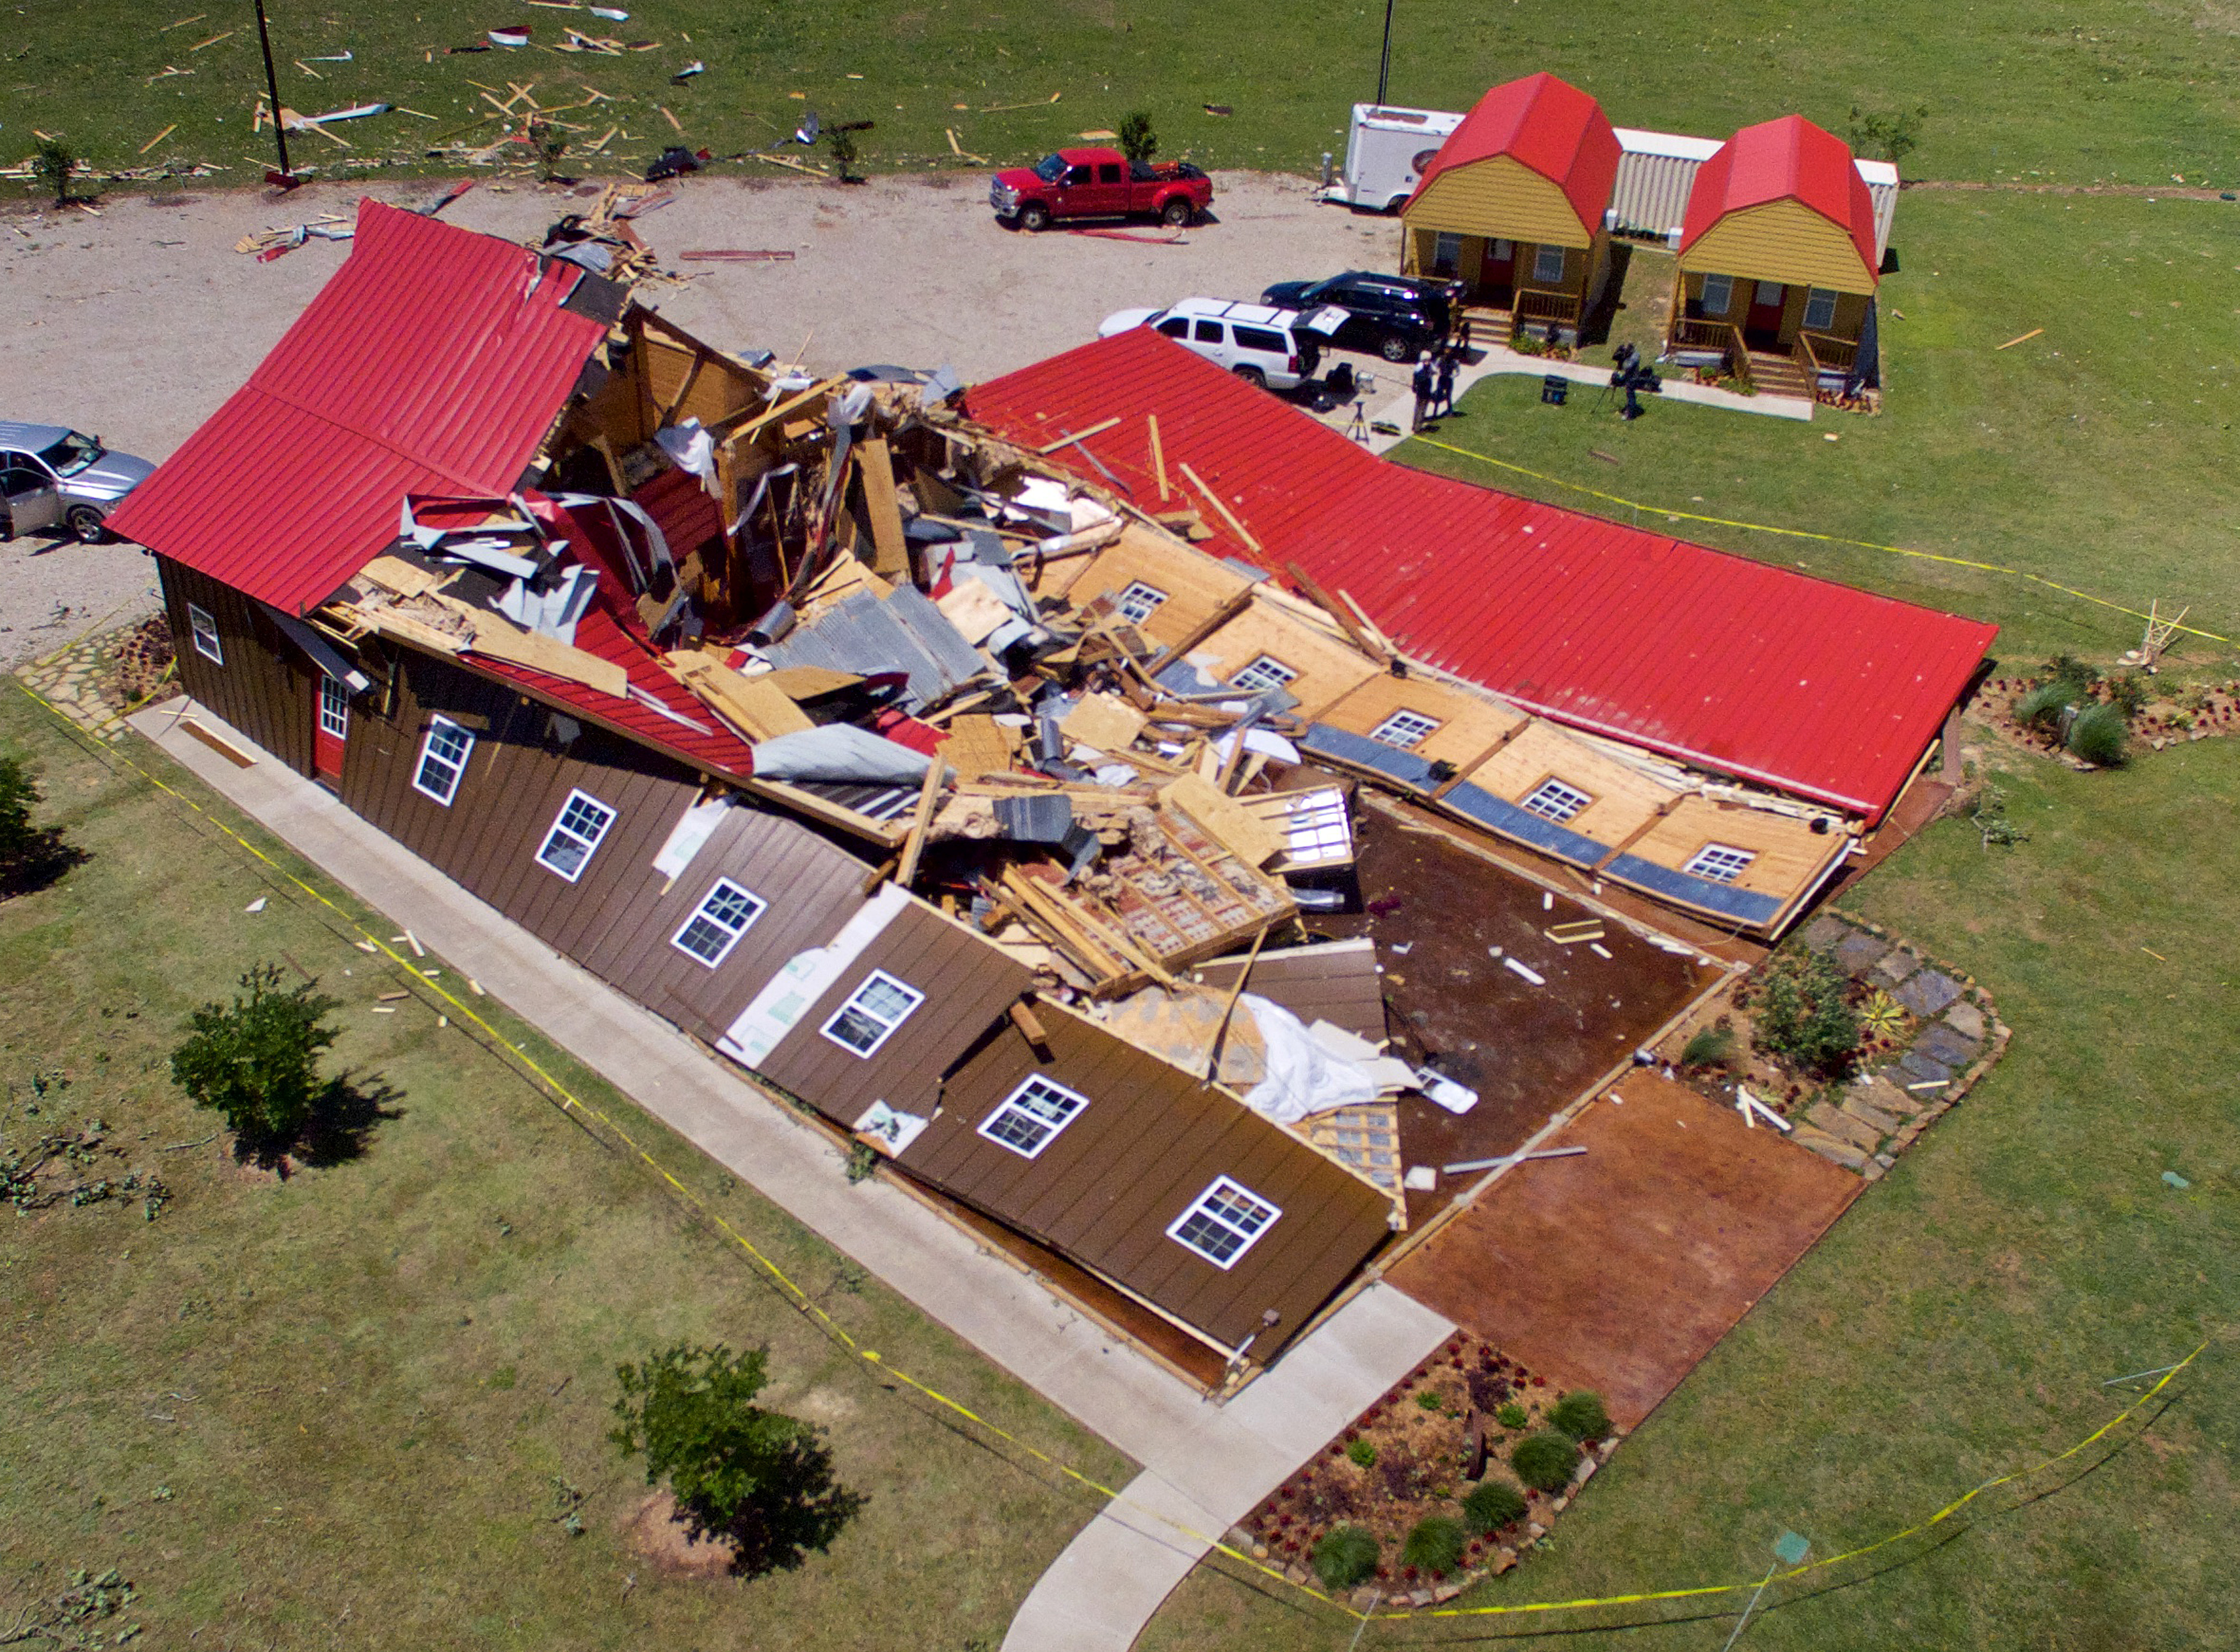 The Rustic Barn, an event hall, which suffered major tornado damage, is seen from an unmanned aerial vehicle in Canton, Texas, April 30, 2017.